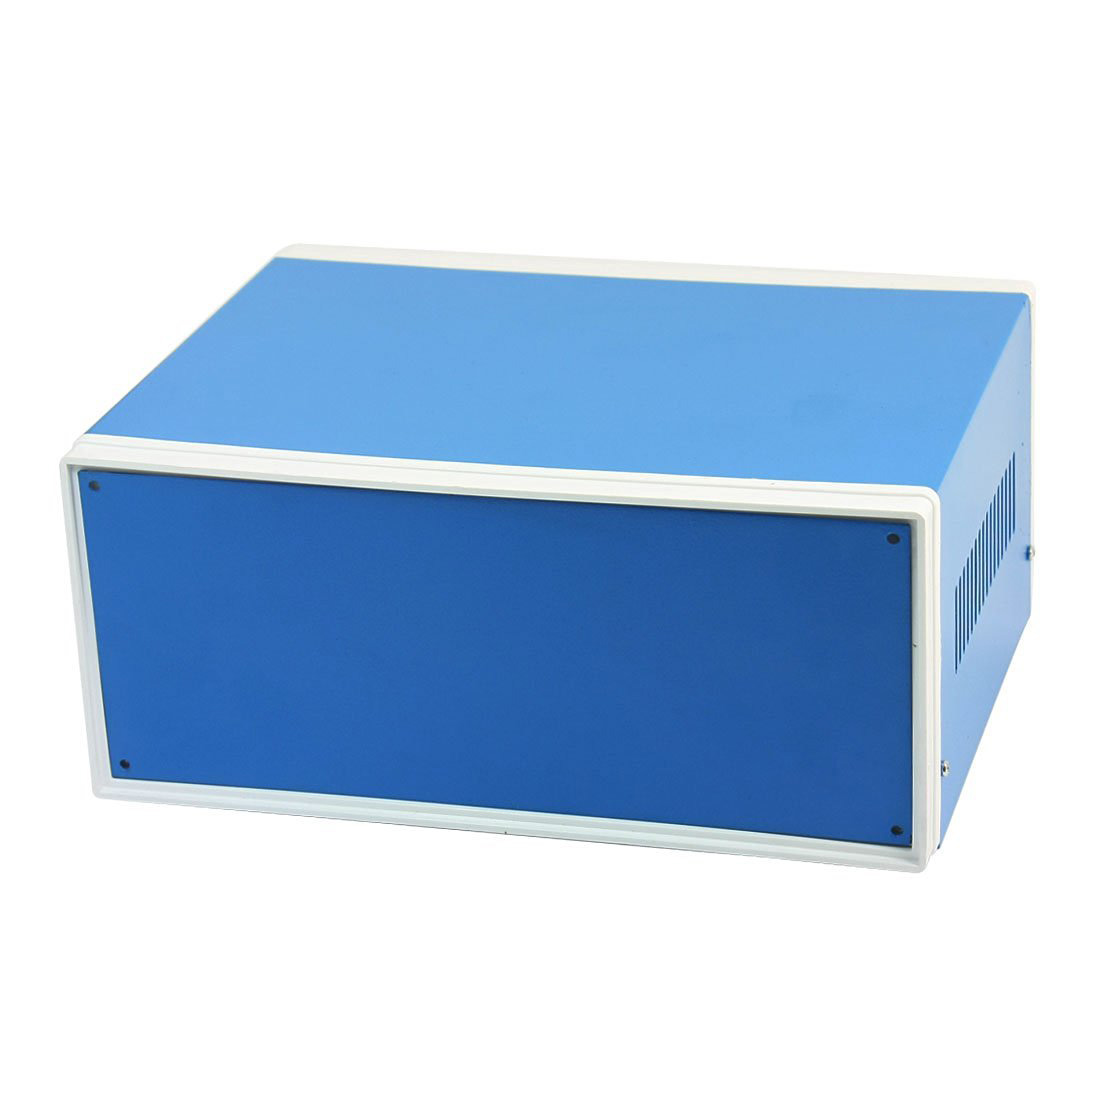 9.8 x 7.5 x 4.3 Blue Metal Enclosure Project Case DIY Junction Box 280 x 250 x 105mm blue metal enclosure project case diy junction box